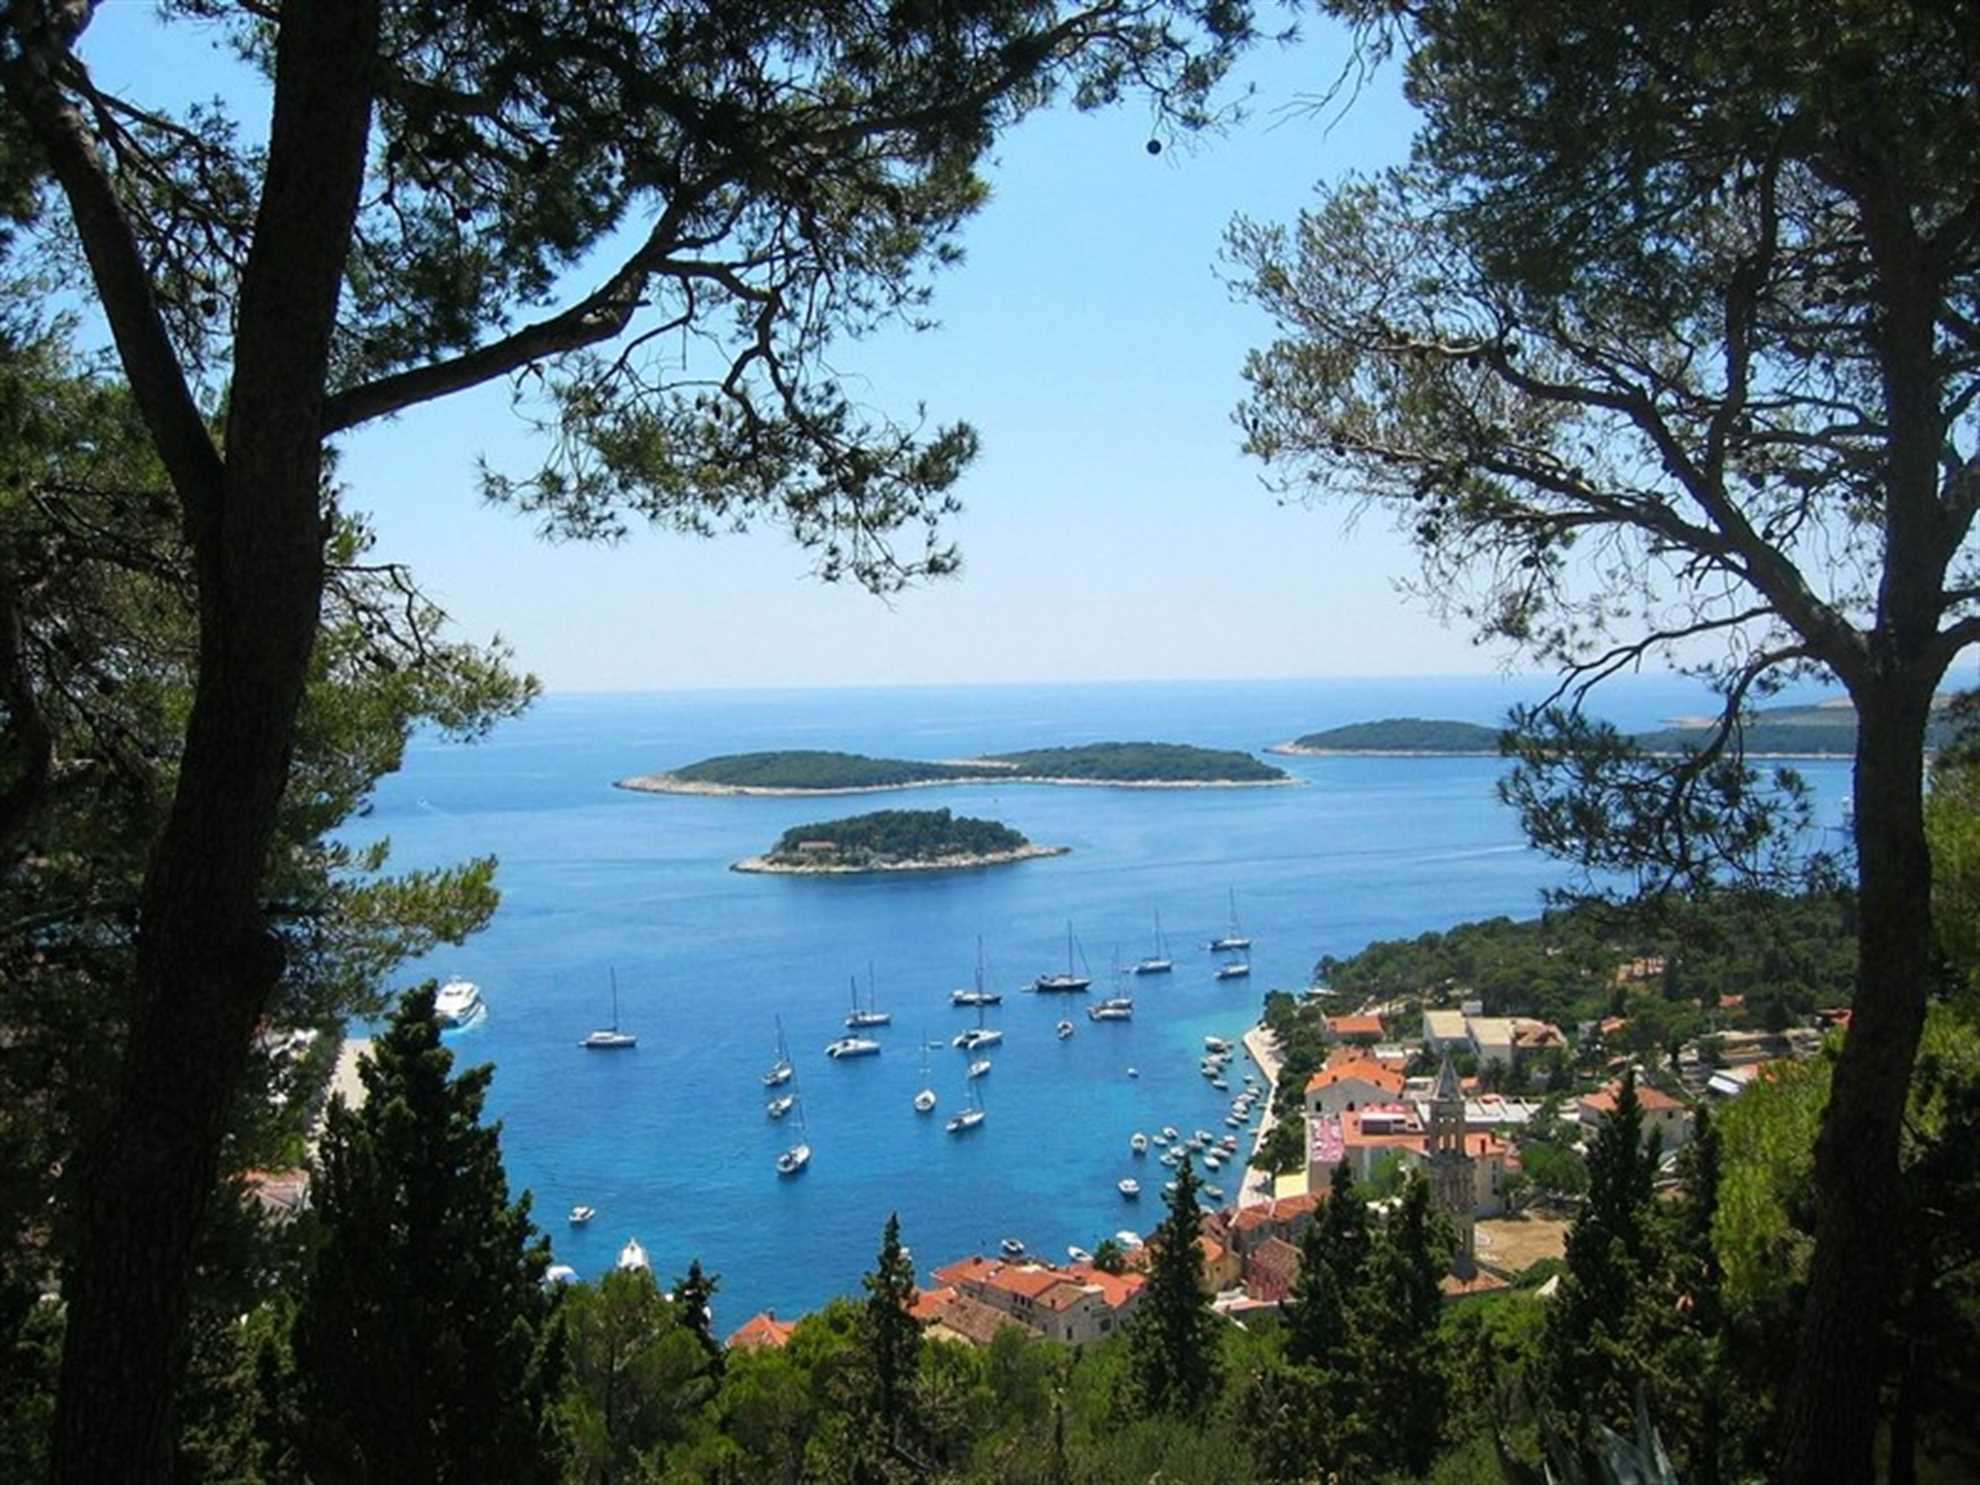 Pakleni islands archipelago in front of Hvar town